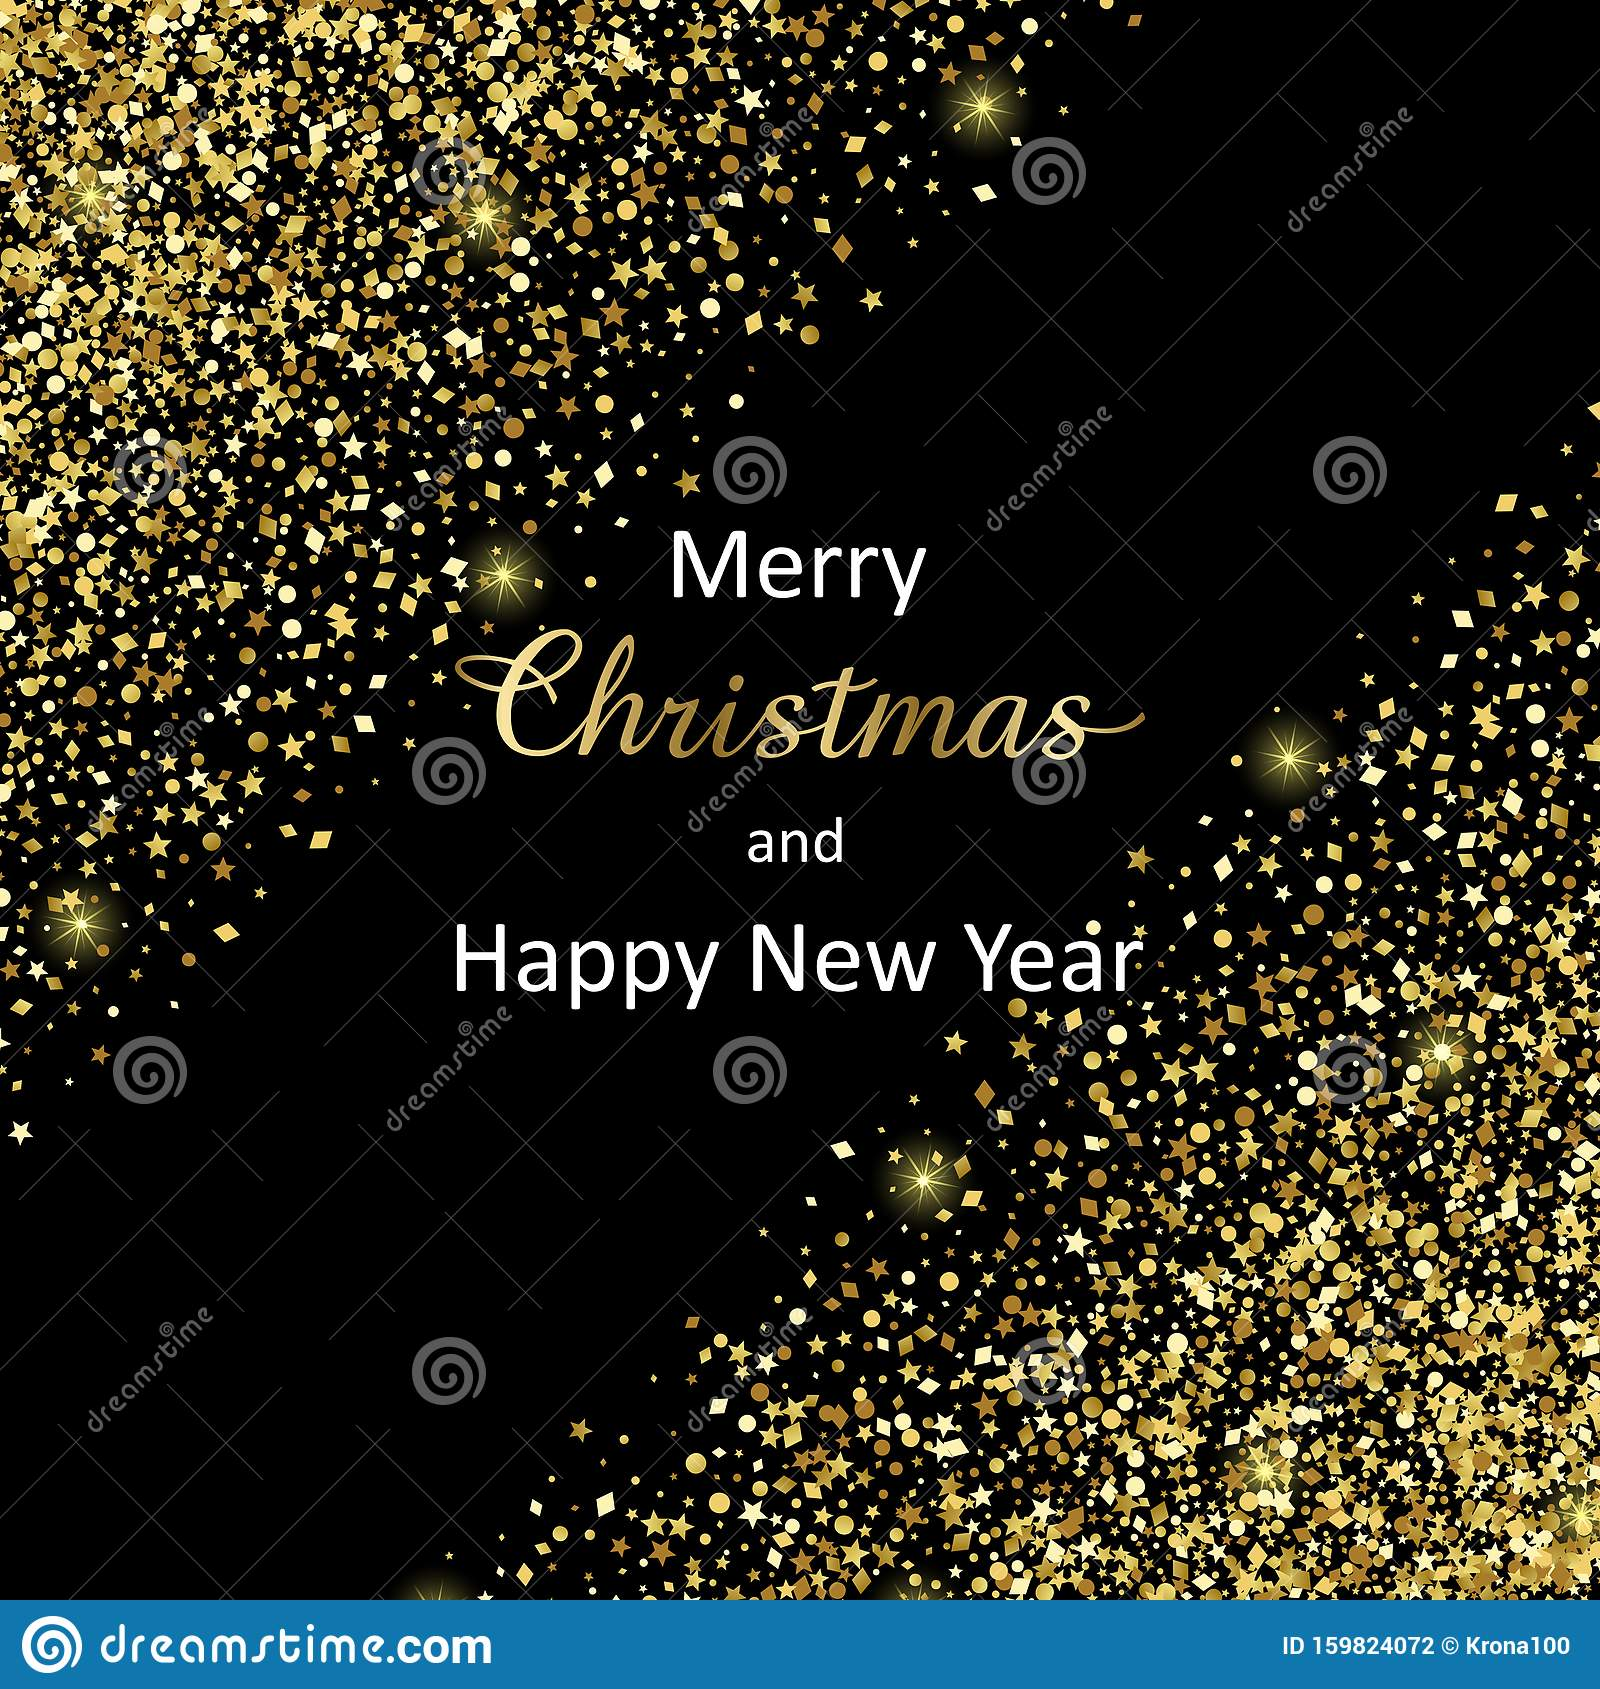 Merry Christmas And Happy New Year 2020 Vector Luxury Greeting Card Stock Vector Illustration Of Design Card 159824072